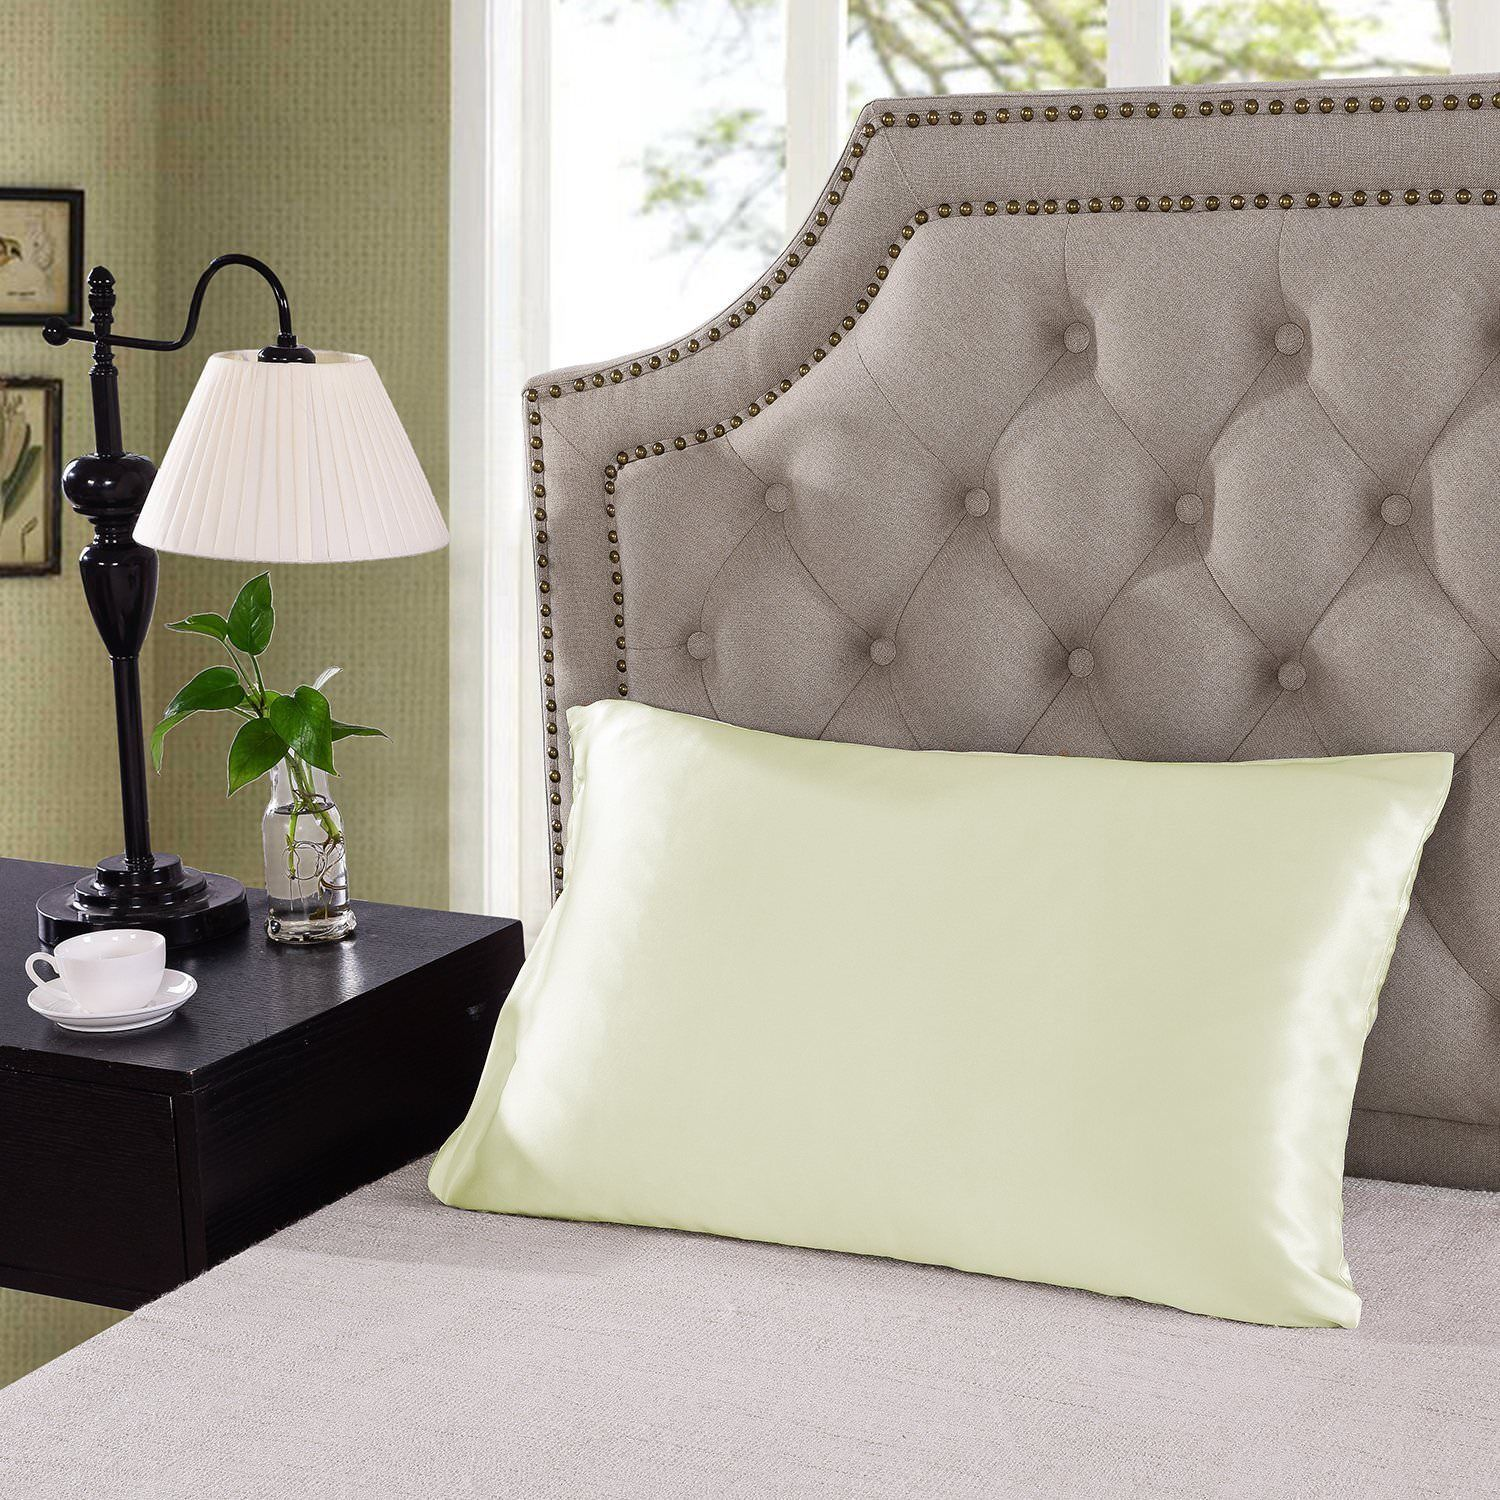 Royal-Comfort-Mulberry-Soft-Silk-Hypoallergenic-Pillowcase-Twin-Pack-51-x-76cm thumbnail 23